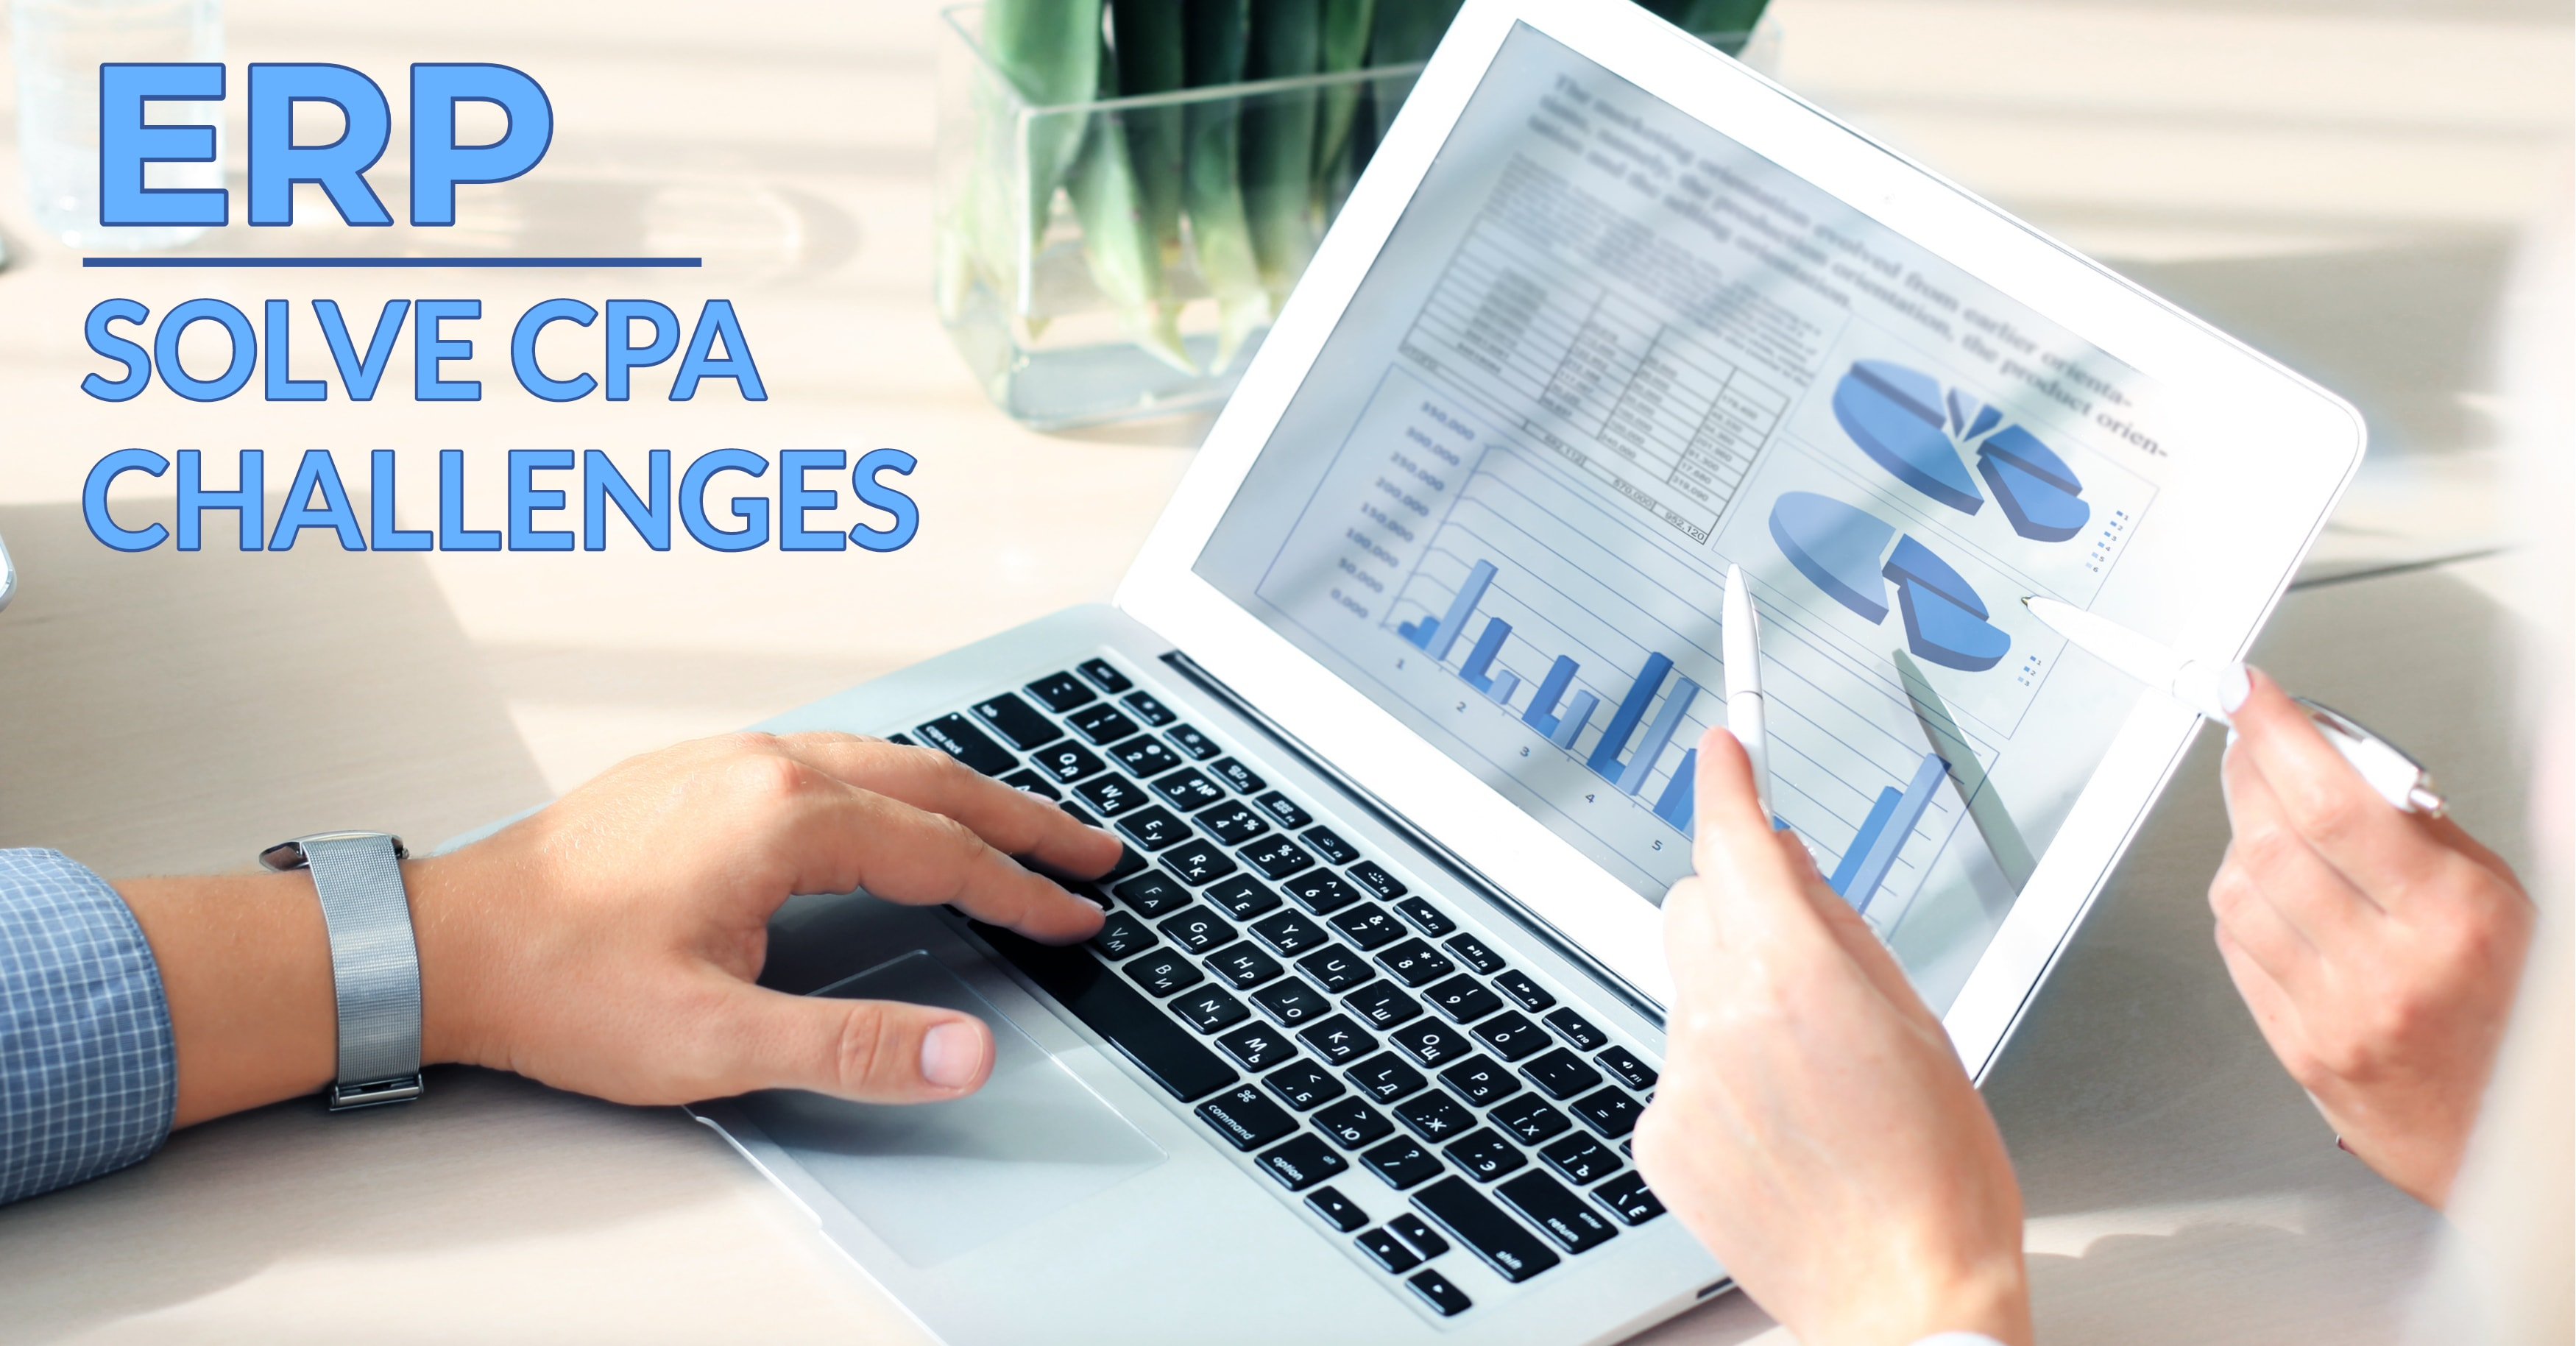 How ERP Can Solve CPA Challenges